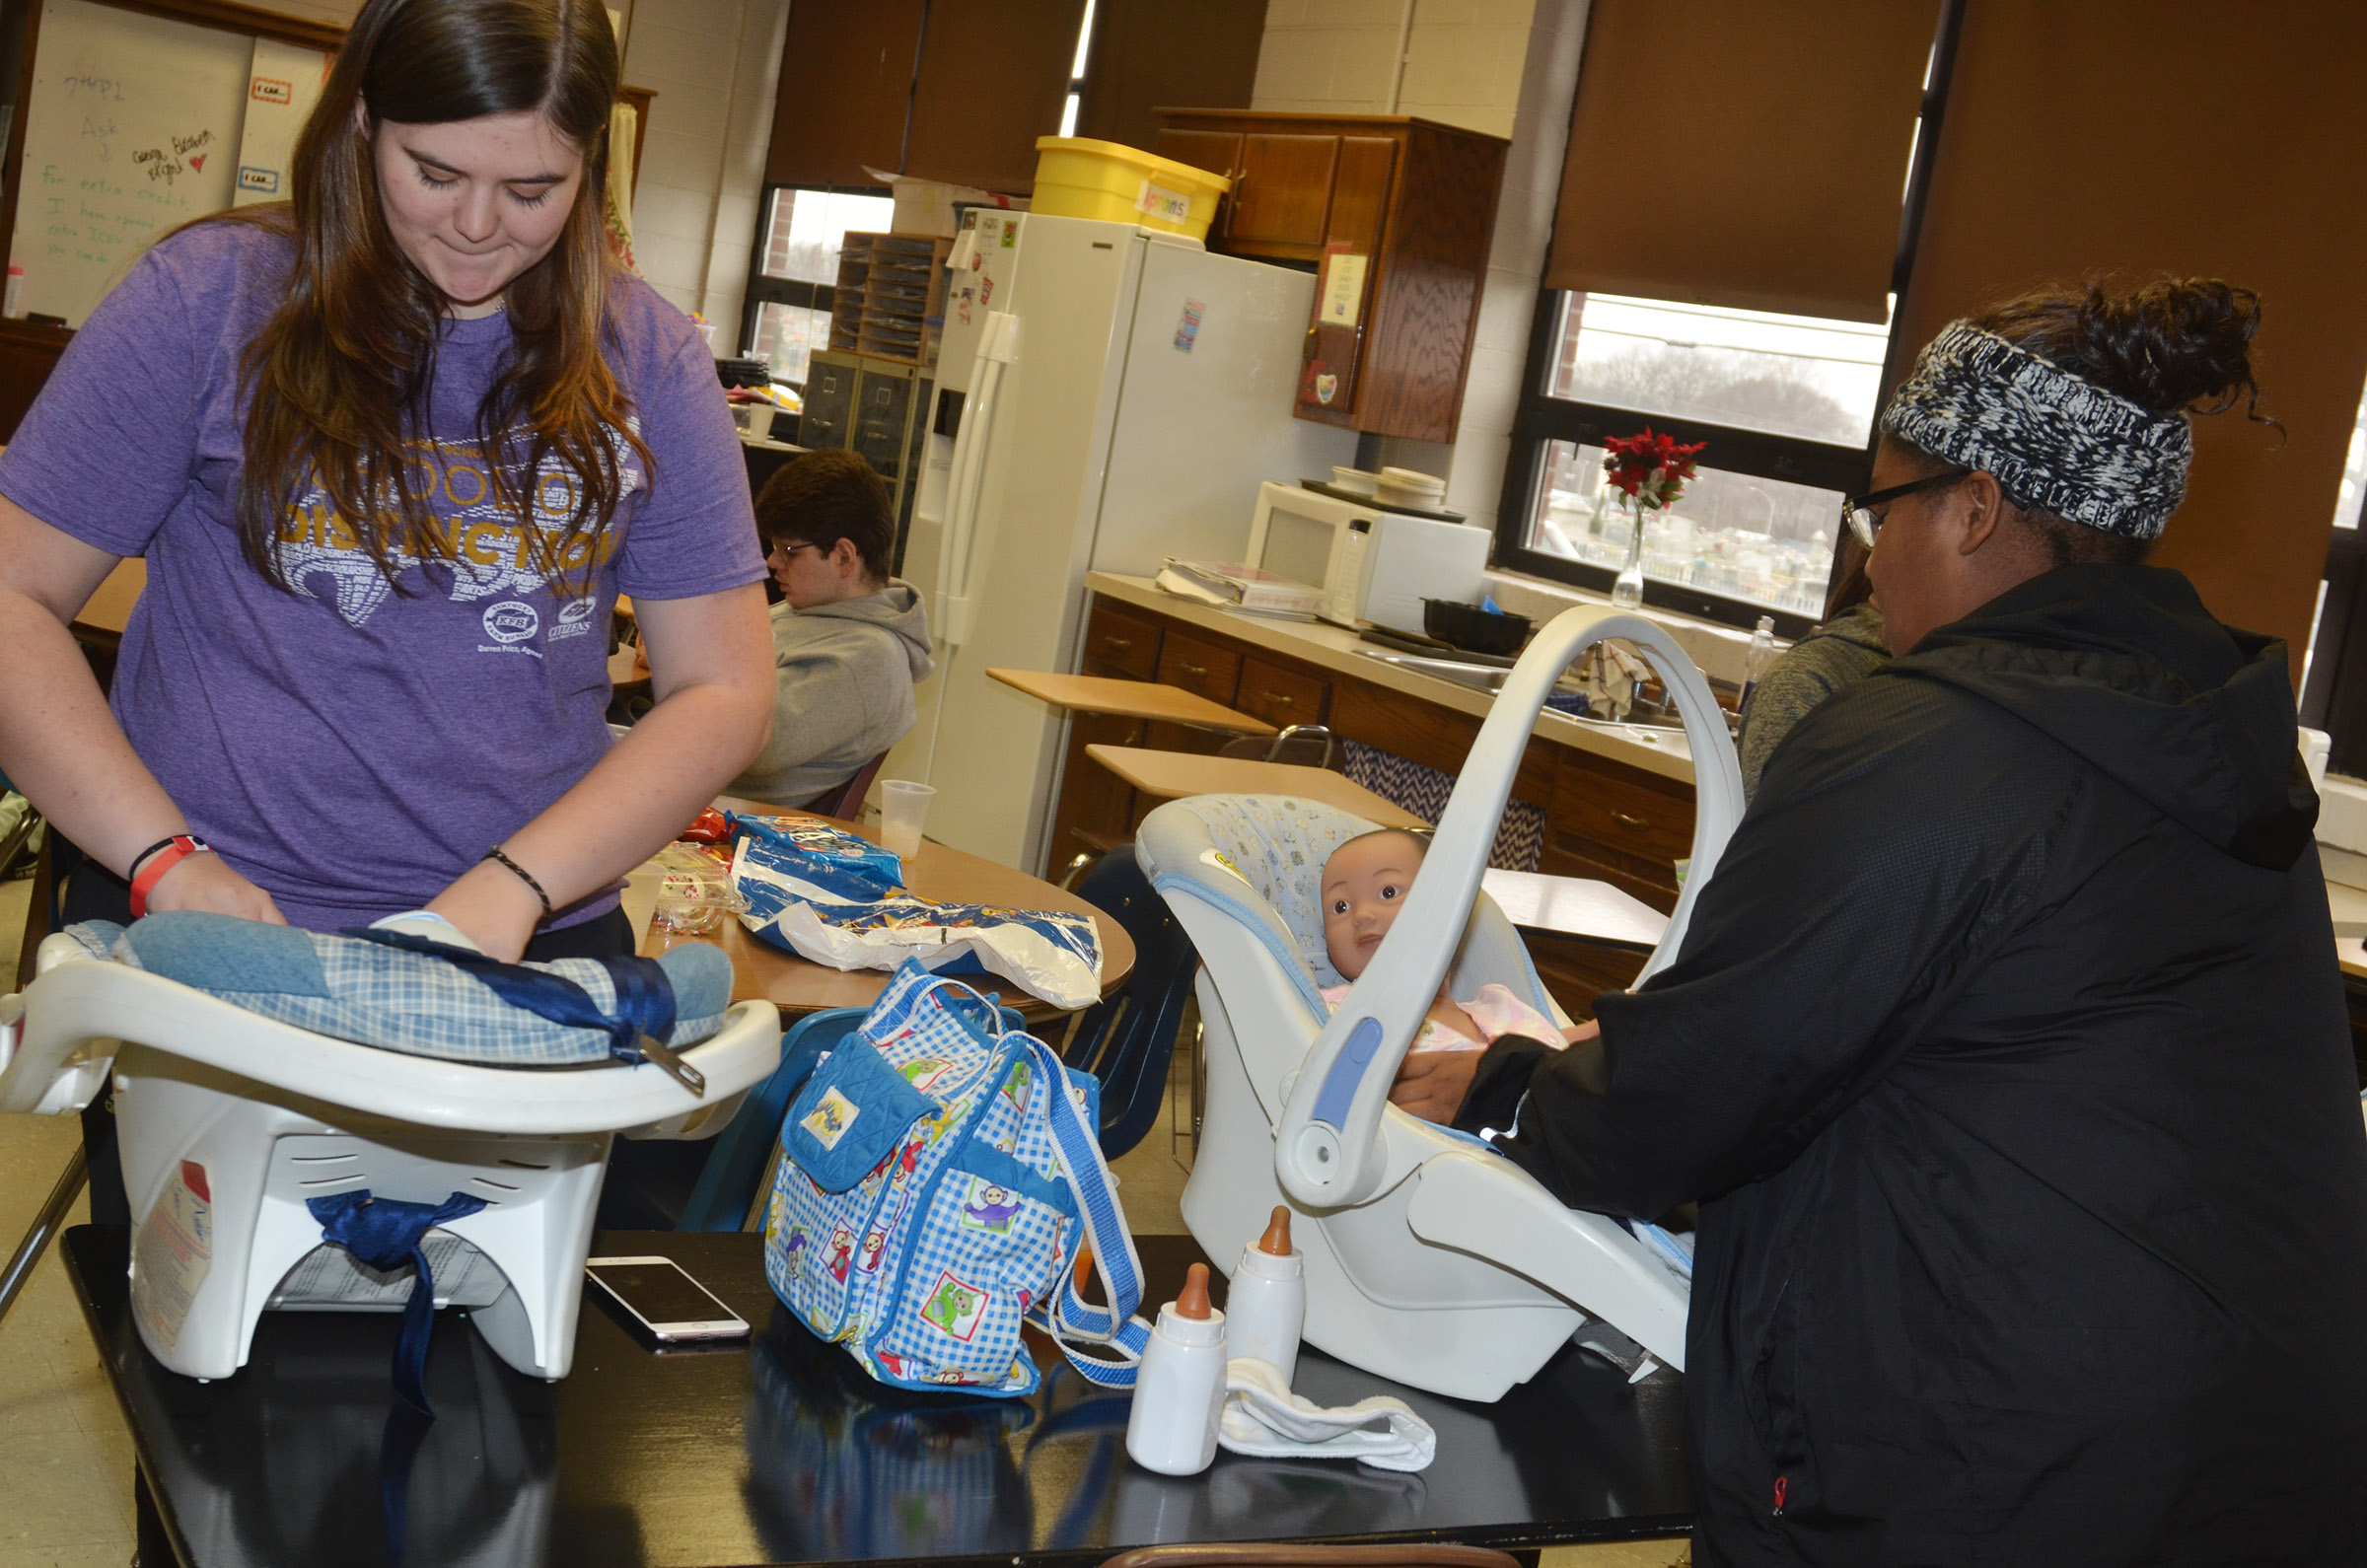 CHS junior Vivian Brown, at left, and freshman Jakyia Mitchell place their babies in car seats.